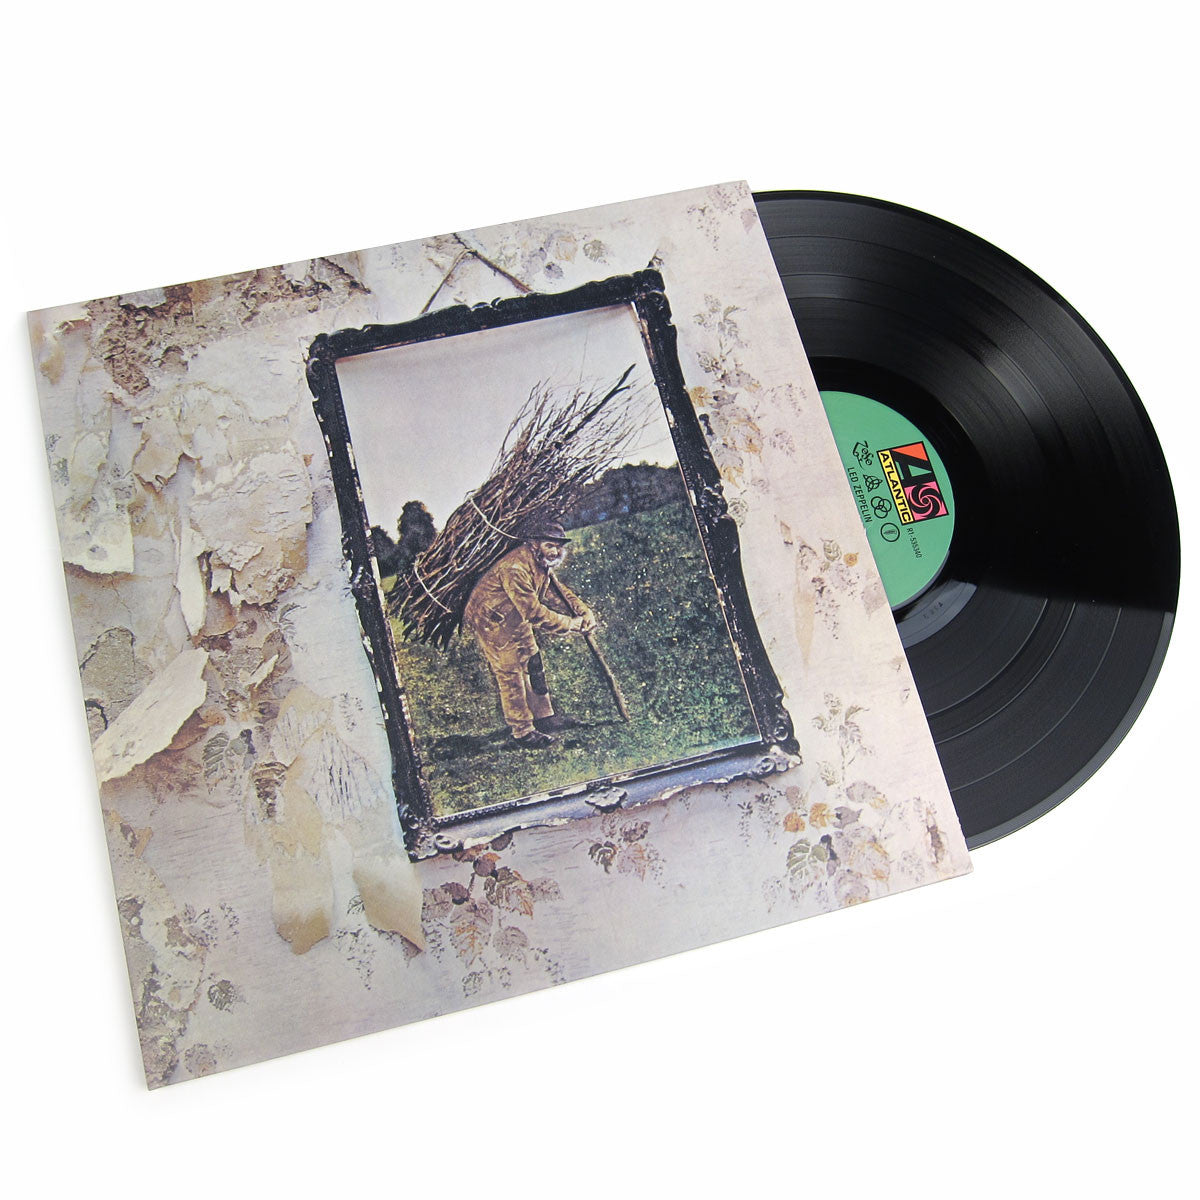 Led Zeppelin: Led Zeppelin IV (Remastered 180g) Vinyl LP